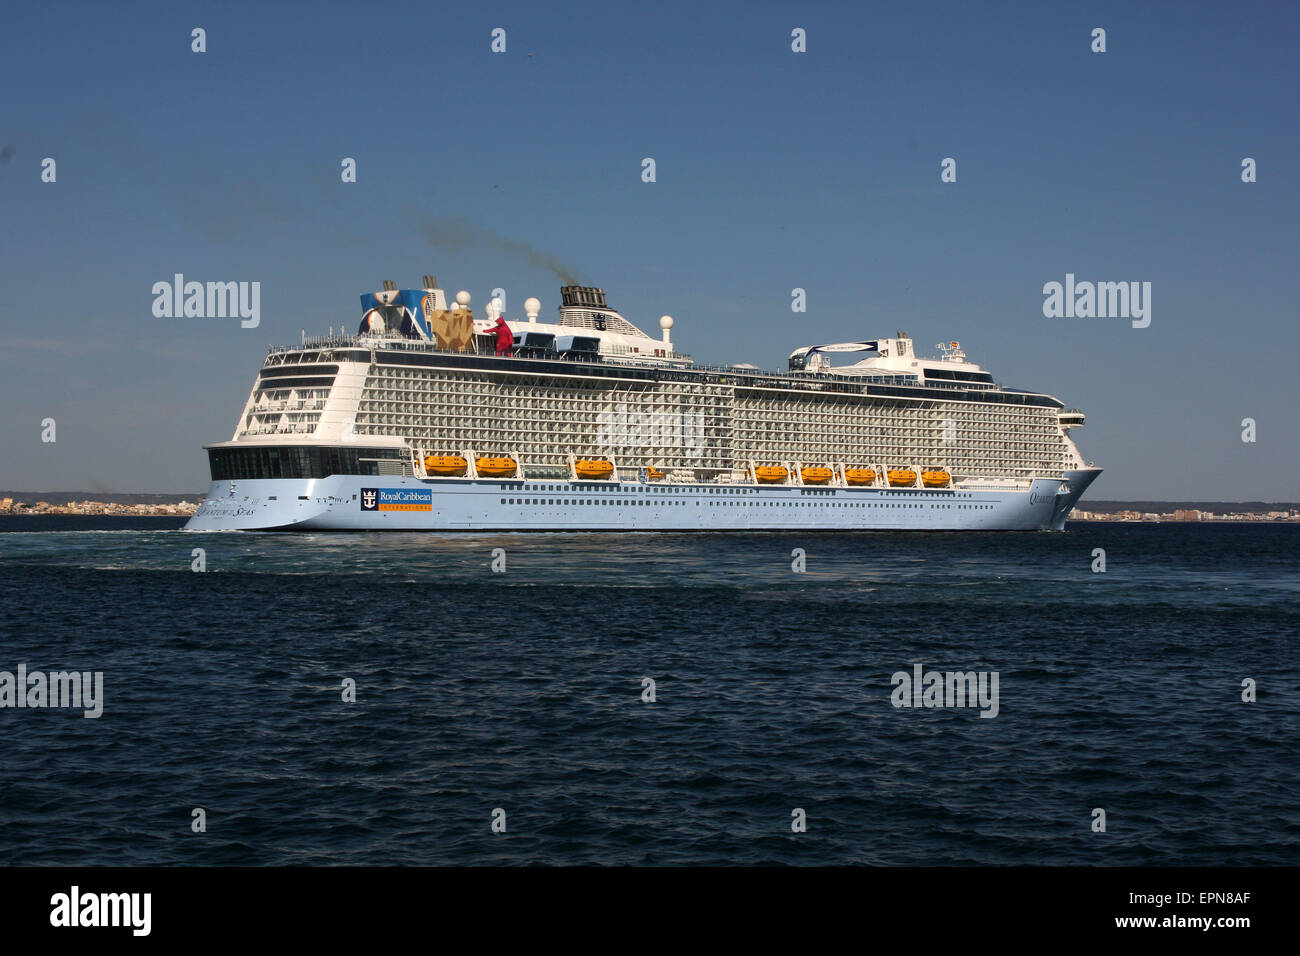 """Mega Cruise ship """"QUANTUM OF THE SEAS"""" ( 347.08 mtrs long - launched in 2014 - 4,100 passengers - 18 decks ) Palma Stock Photo"""